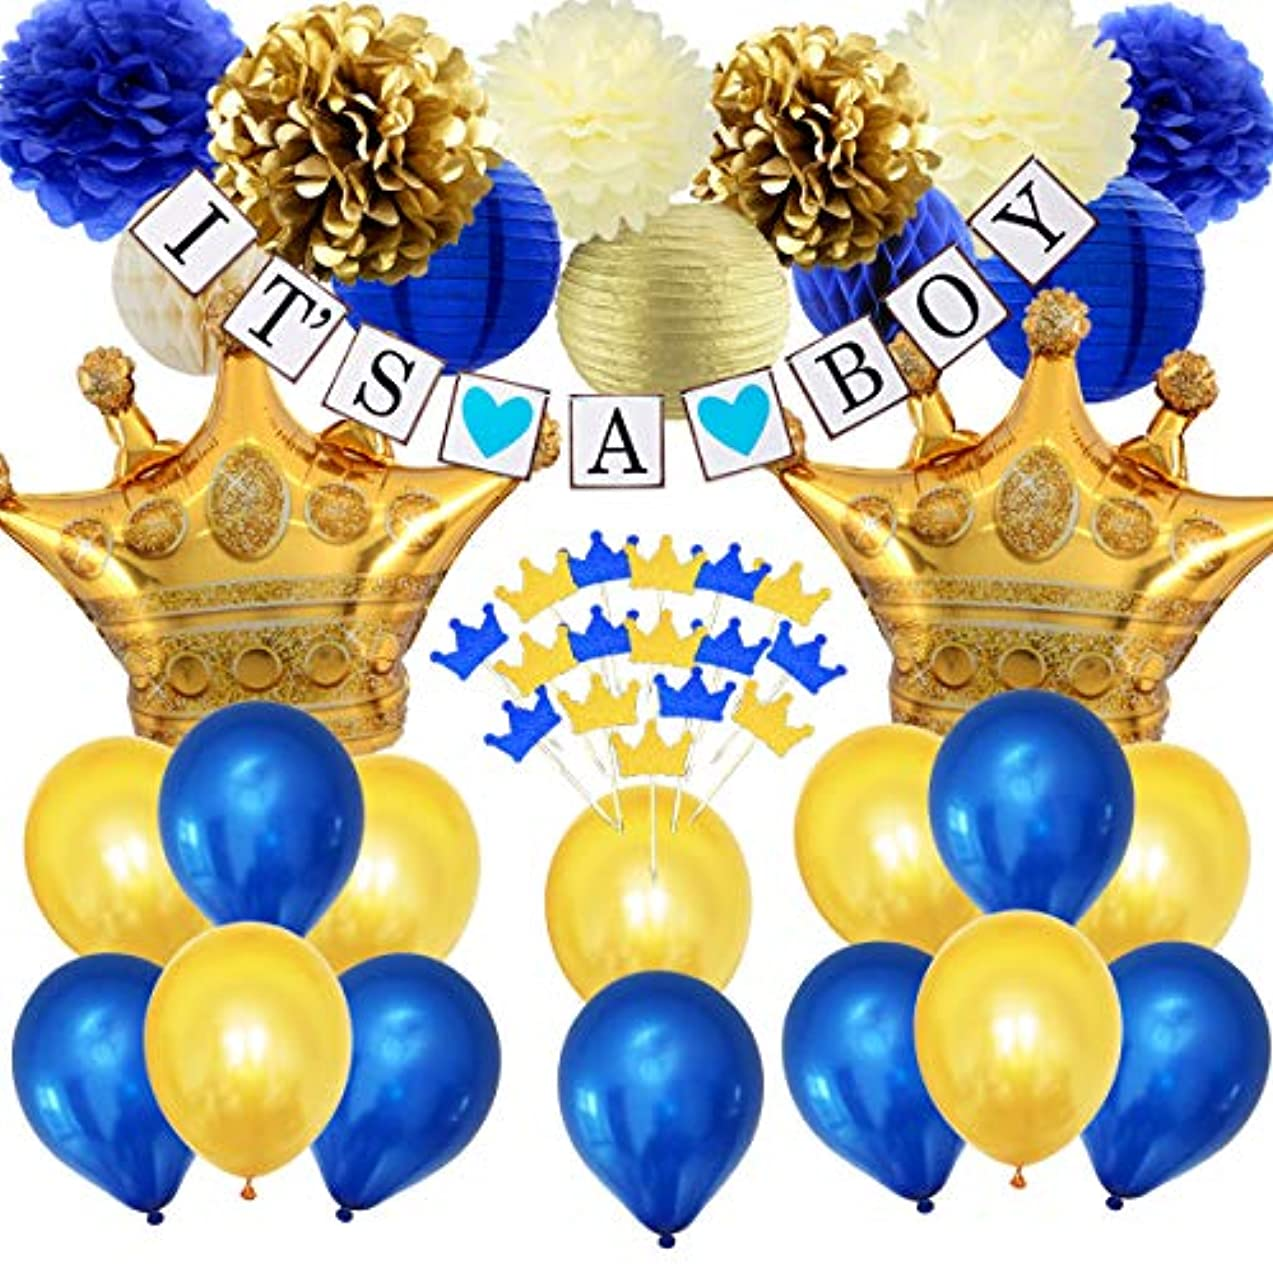 JOYMEMO Navy Blue Baby Shower Decorations Royal Prince Baby Shower for Boy, Navy Gold Cupcake Toppers, Crown Foil Balloons, IT'S A BOY Bunting Banner and Tissue Paper Decor